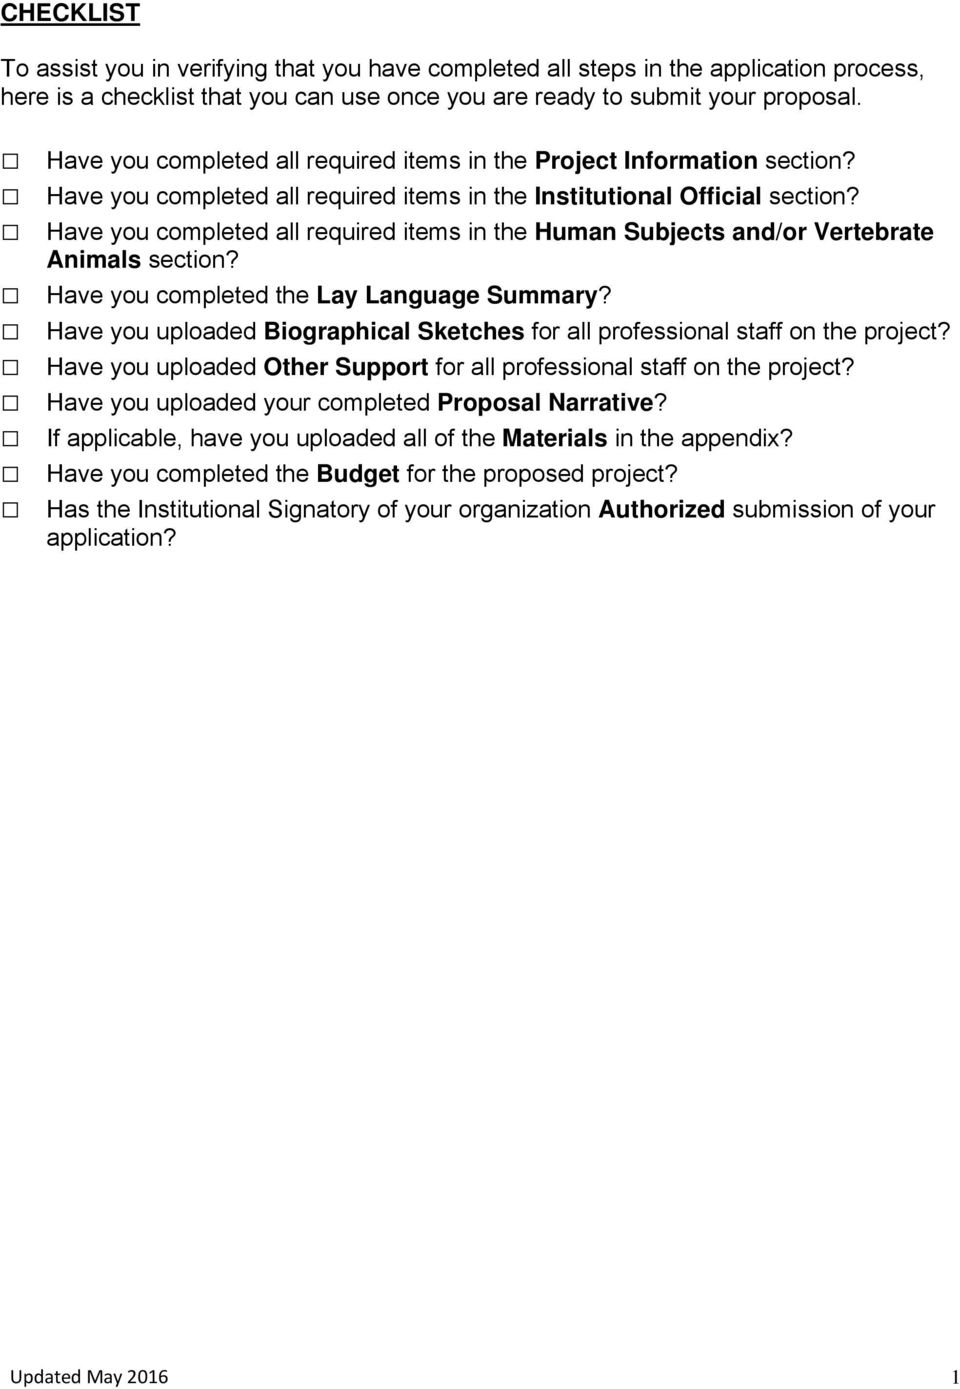 Have you completed all required items in the Human Subjects and/or Vertebrate Animals section? Have you completed the Lay Language Summary?